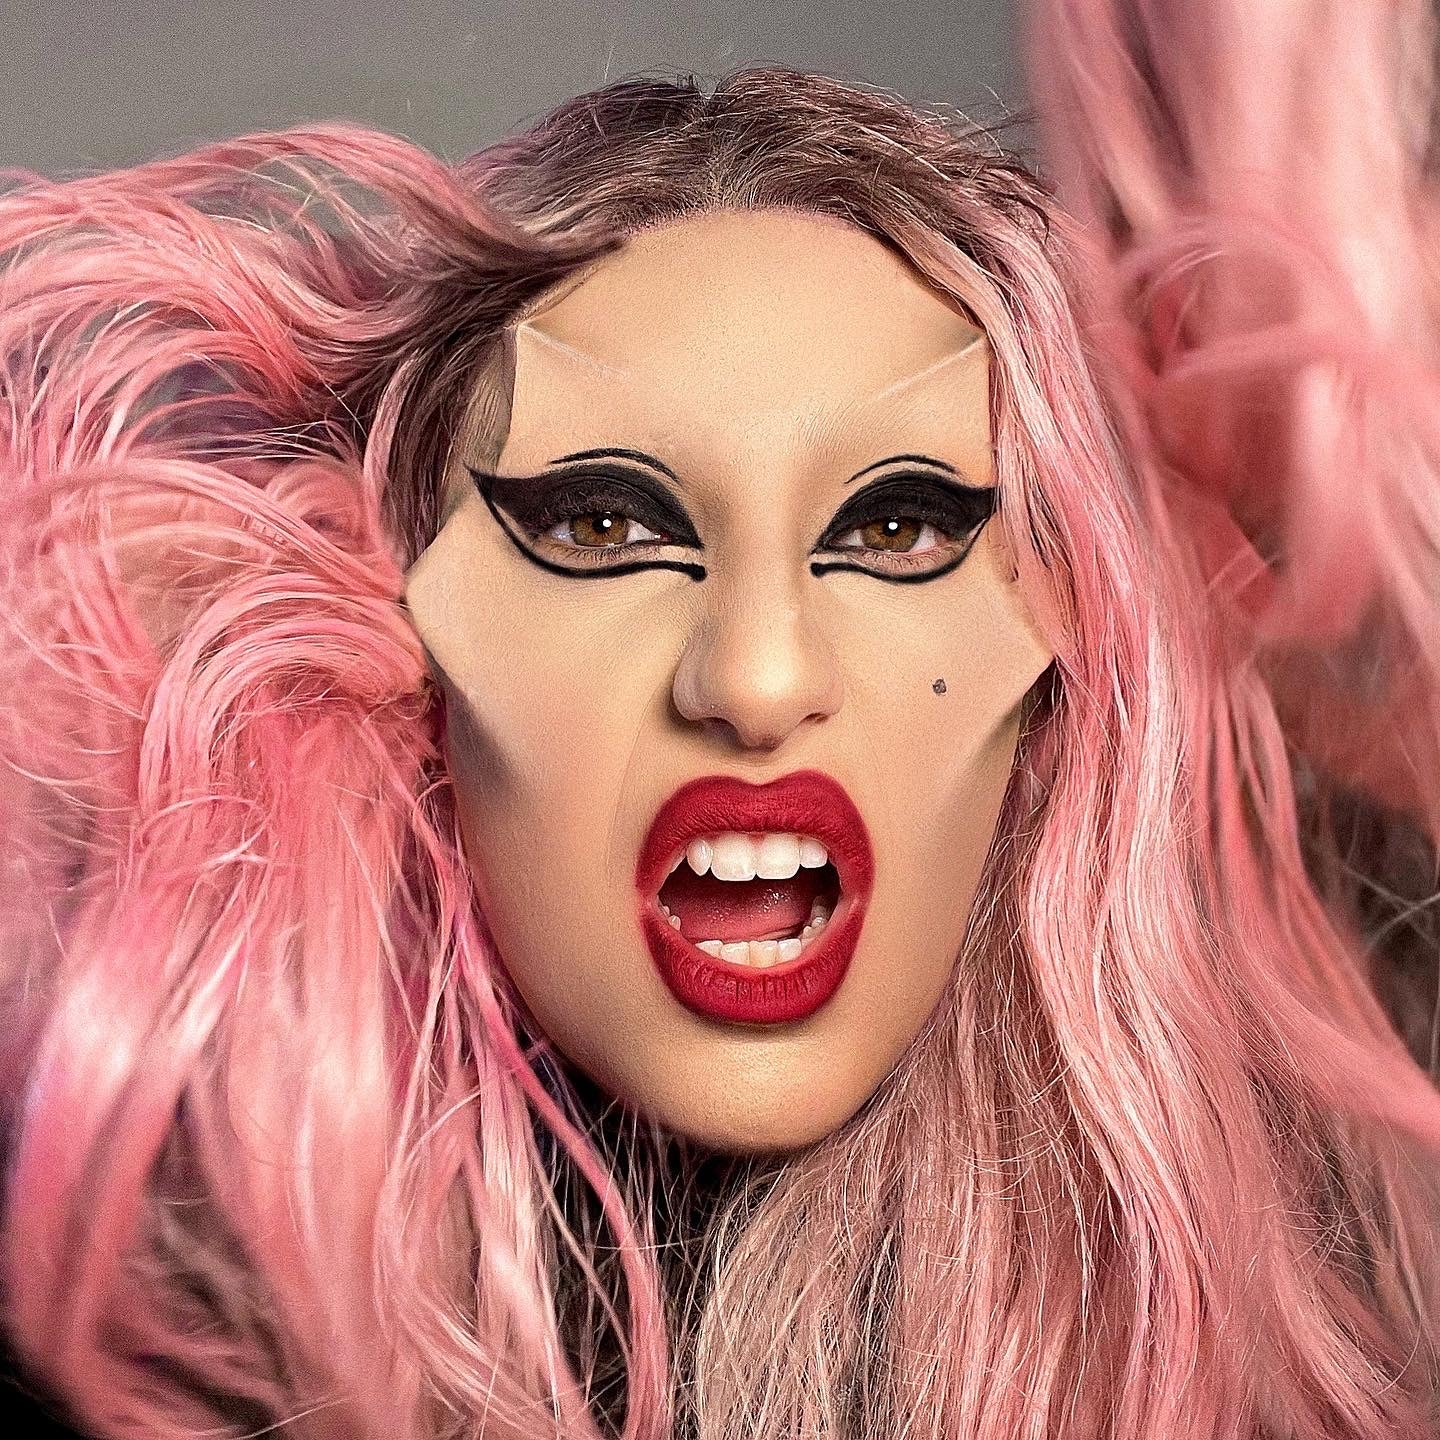 Lady Gaga inspired makeup, with pink hair, red lips and grunge eyes